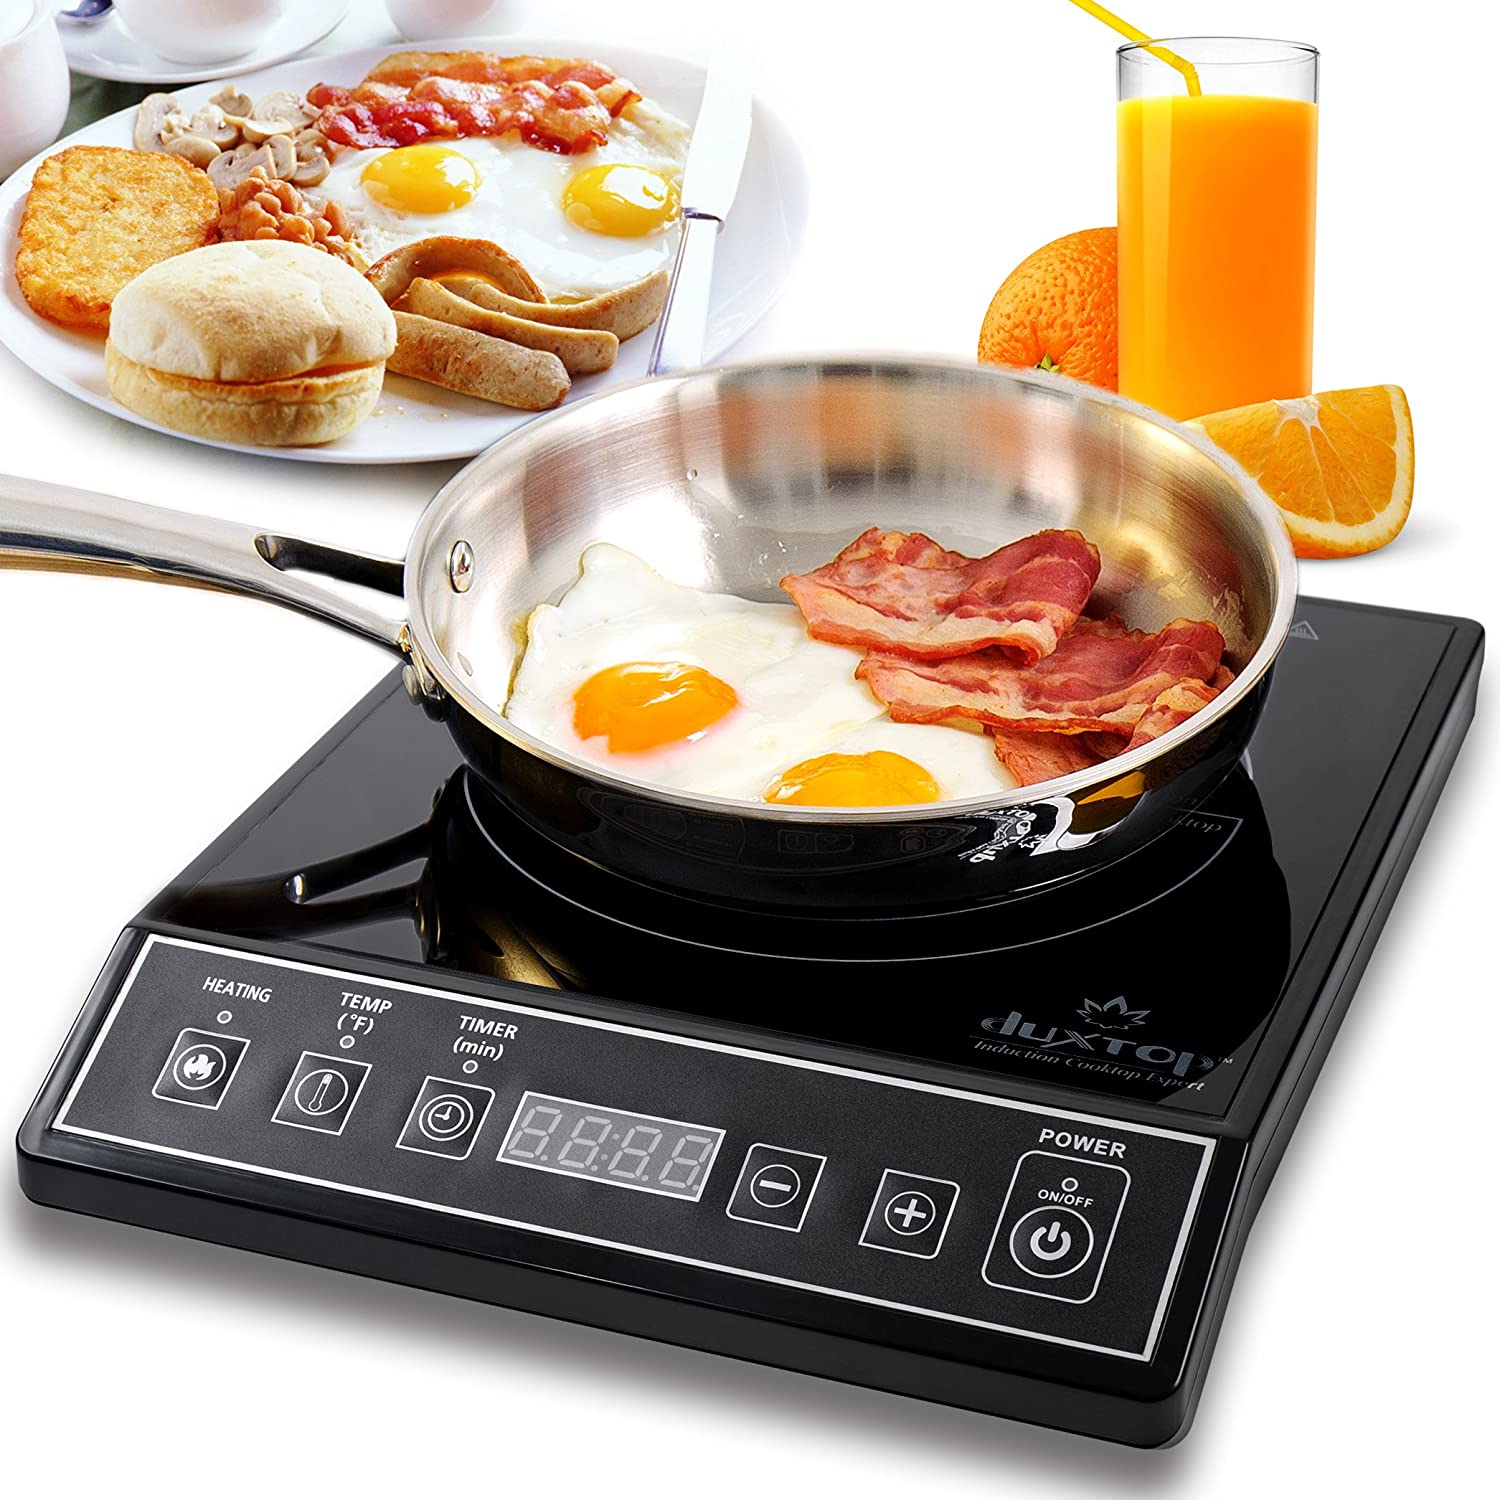 Countertop Burner 1800 Watt Portable Induction Stove Cook ware Digital ...